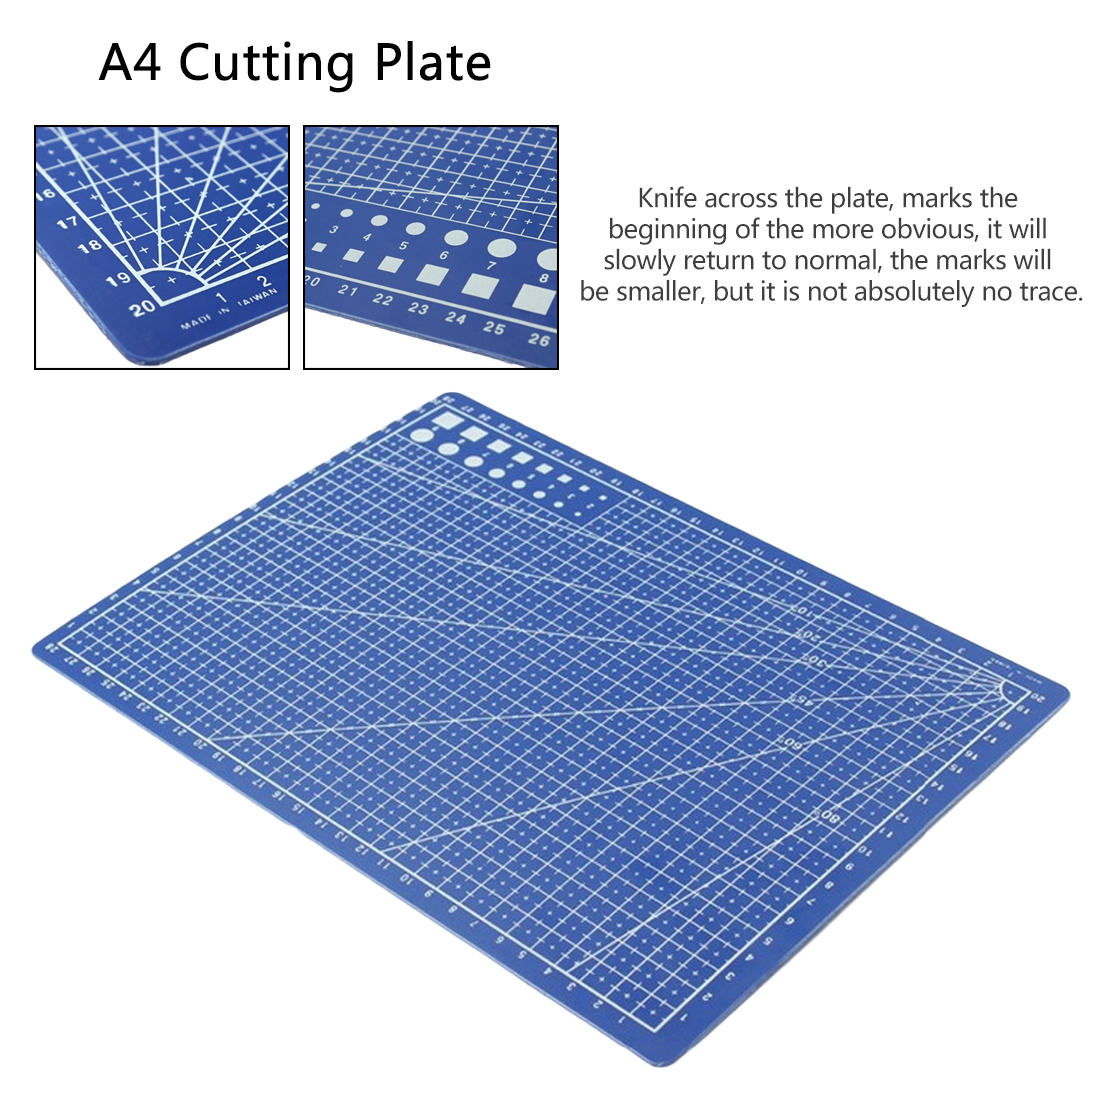 Portable Cutting Plate 1PC A4 Grid Lines Self Healing Cutting Mat Craft Card Paper Board 30 X 22cm Blue